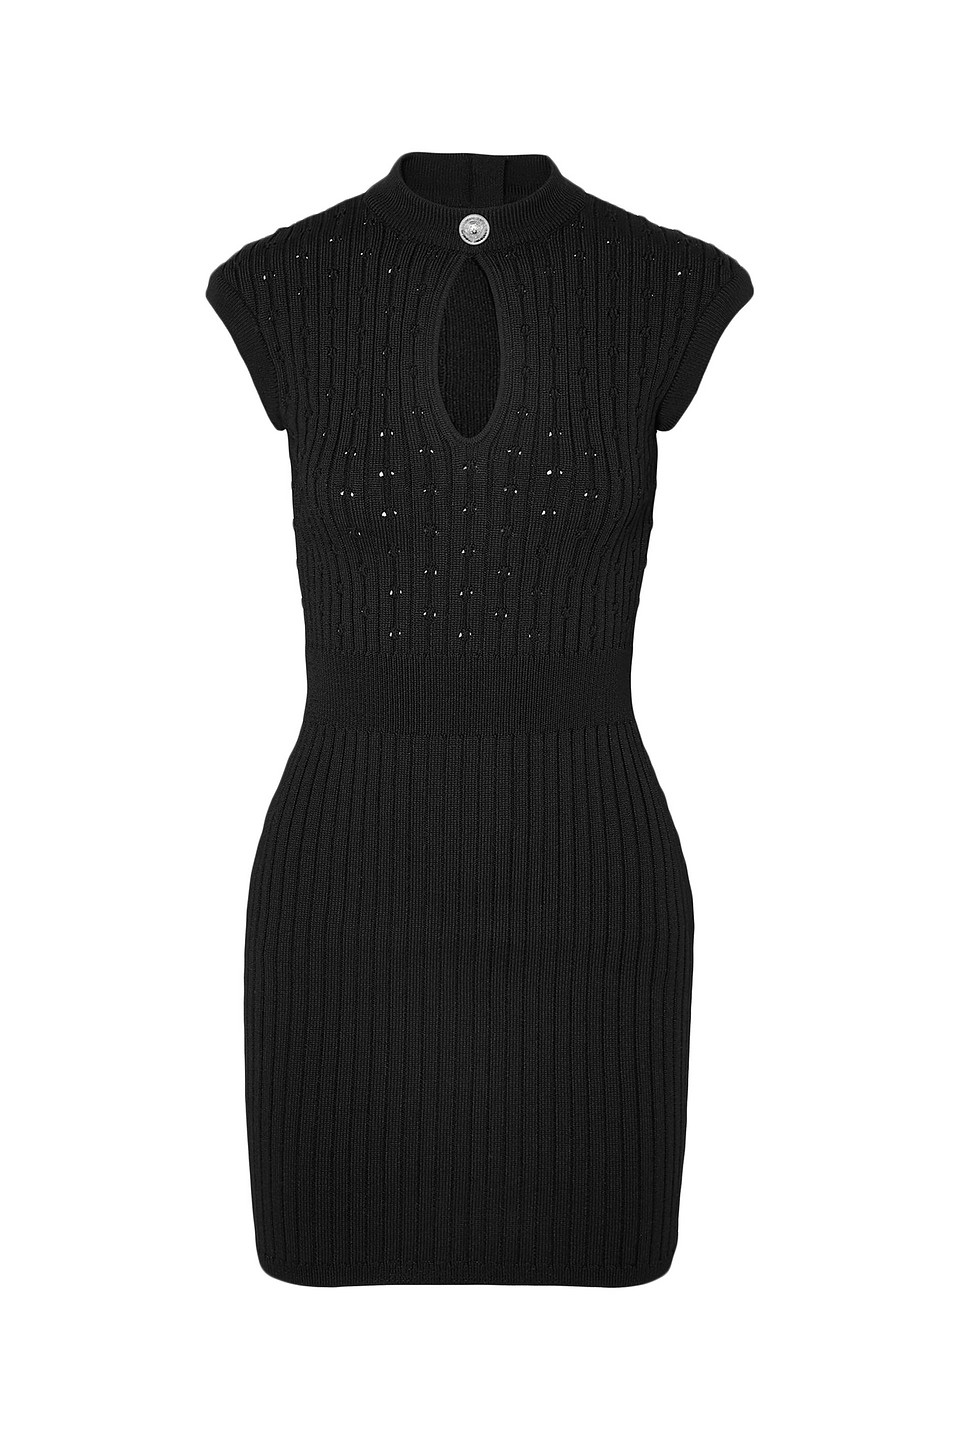 BALMAIN | Balmain Woman Cutout Ribbed And Pointelle-knit Mini Dress Black | Clouty